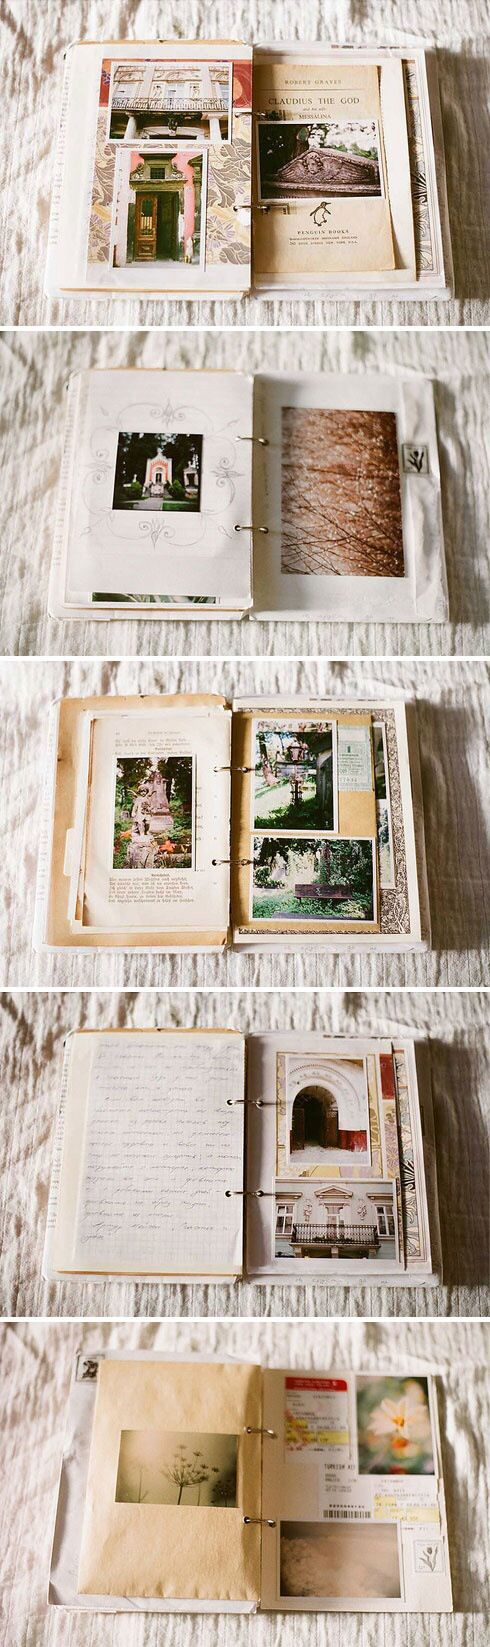 best journaling images on pinterest art journals bricolage and